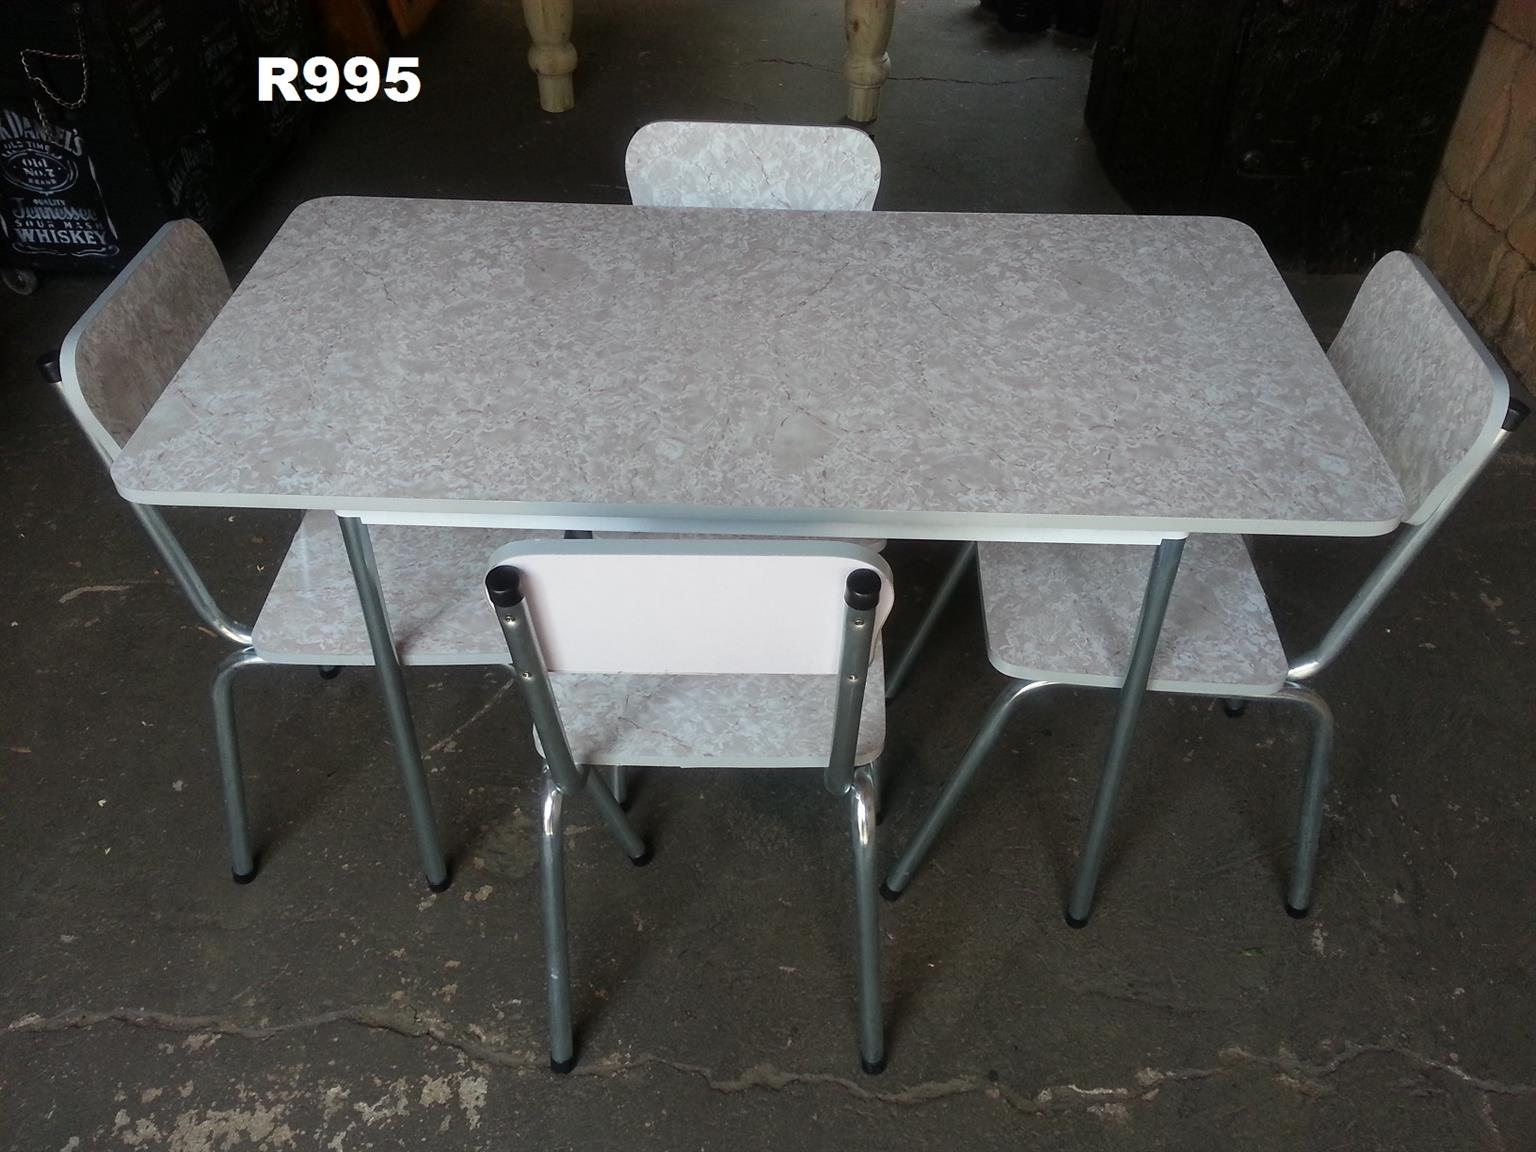 Panelite Kitchen Table with 4 Chairs (1205x625x740)